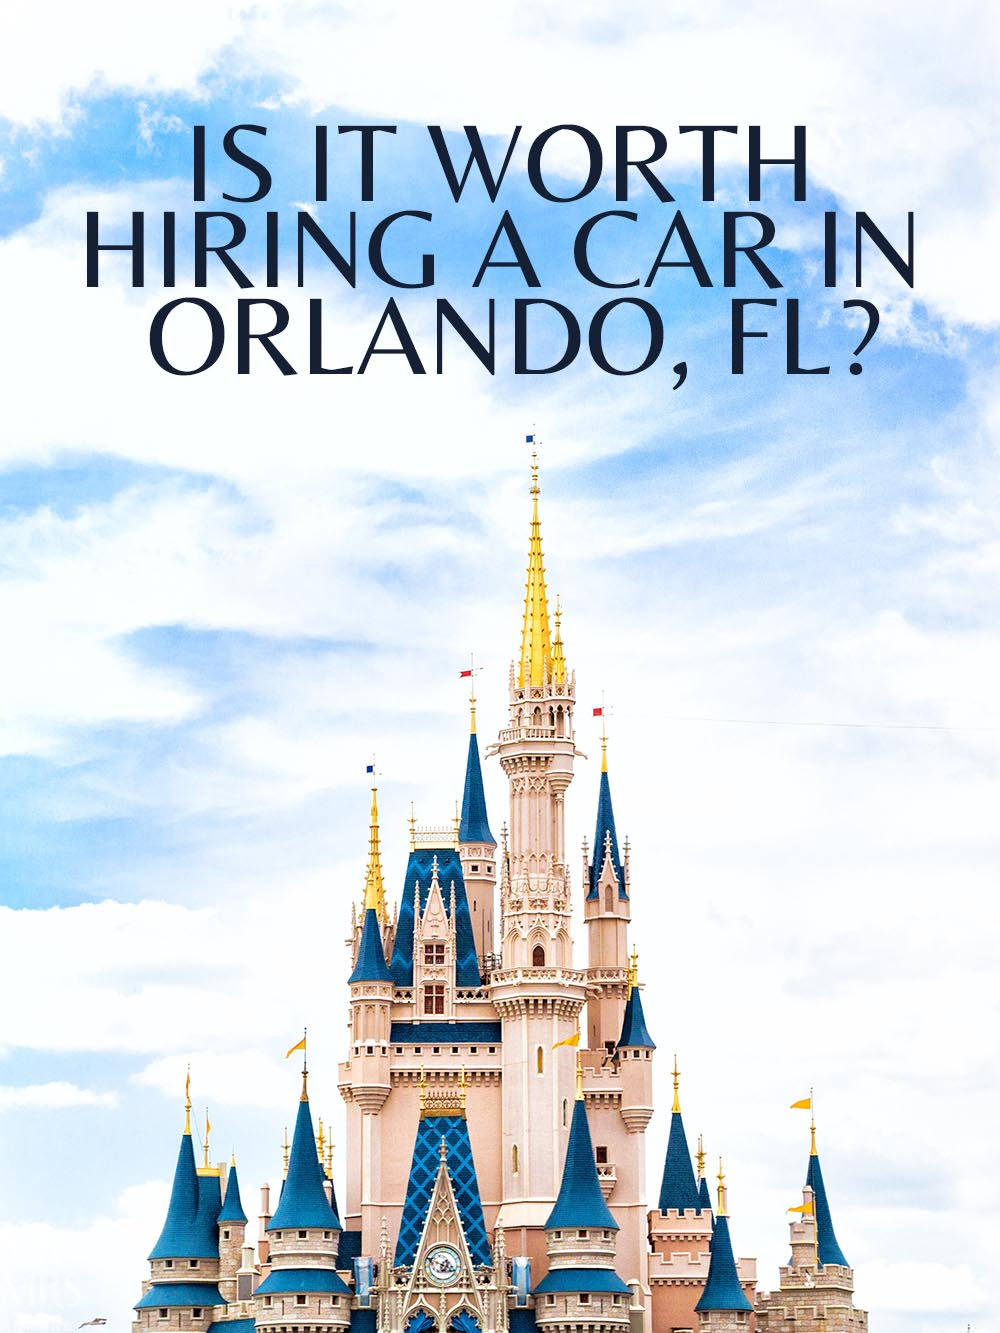 Driving in Orlando - hire cars Orlando, Florida